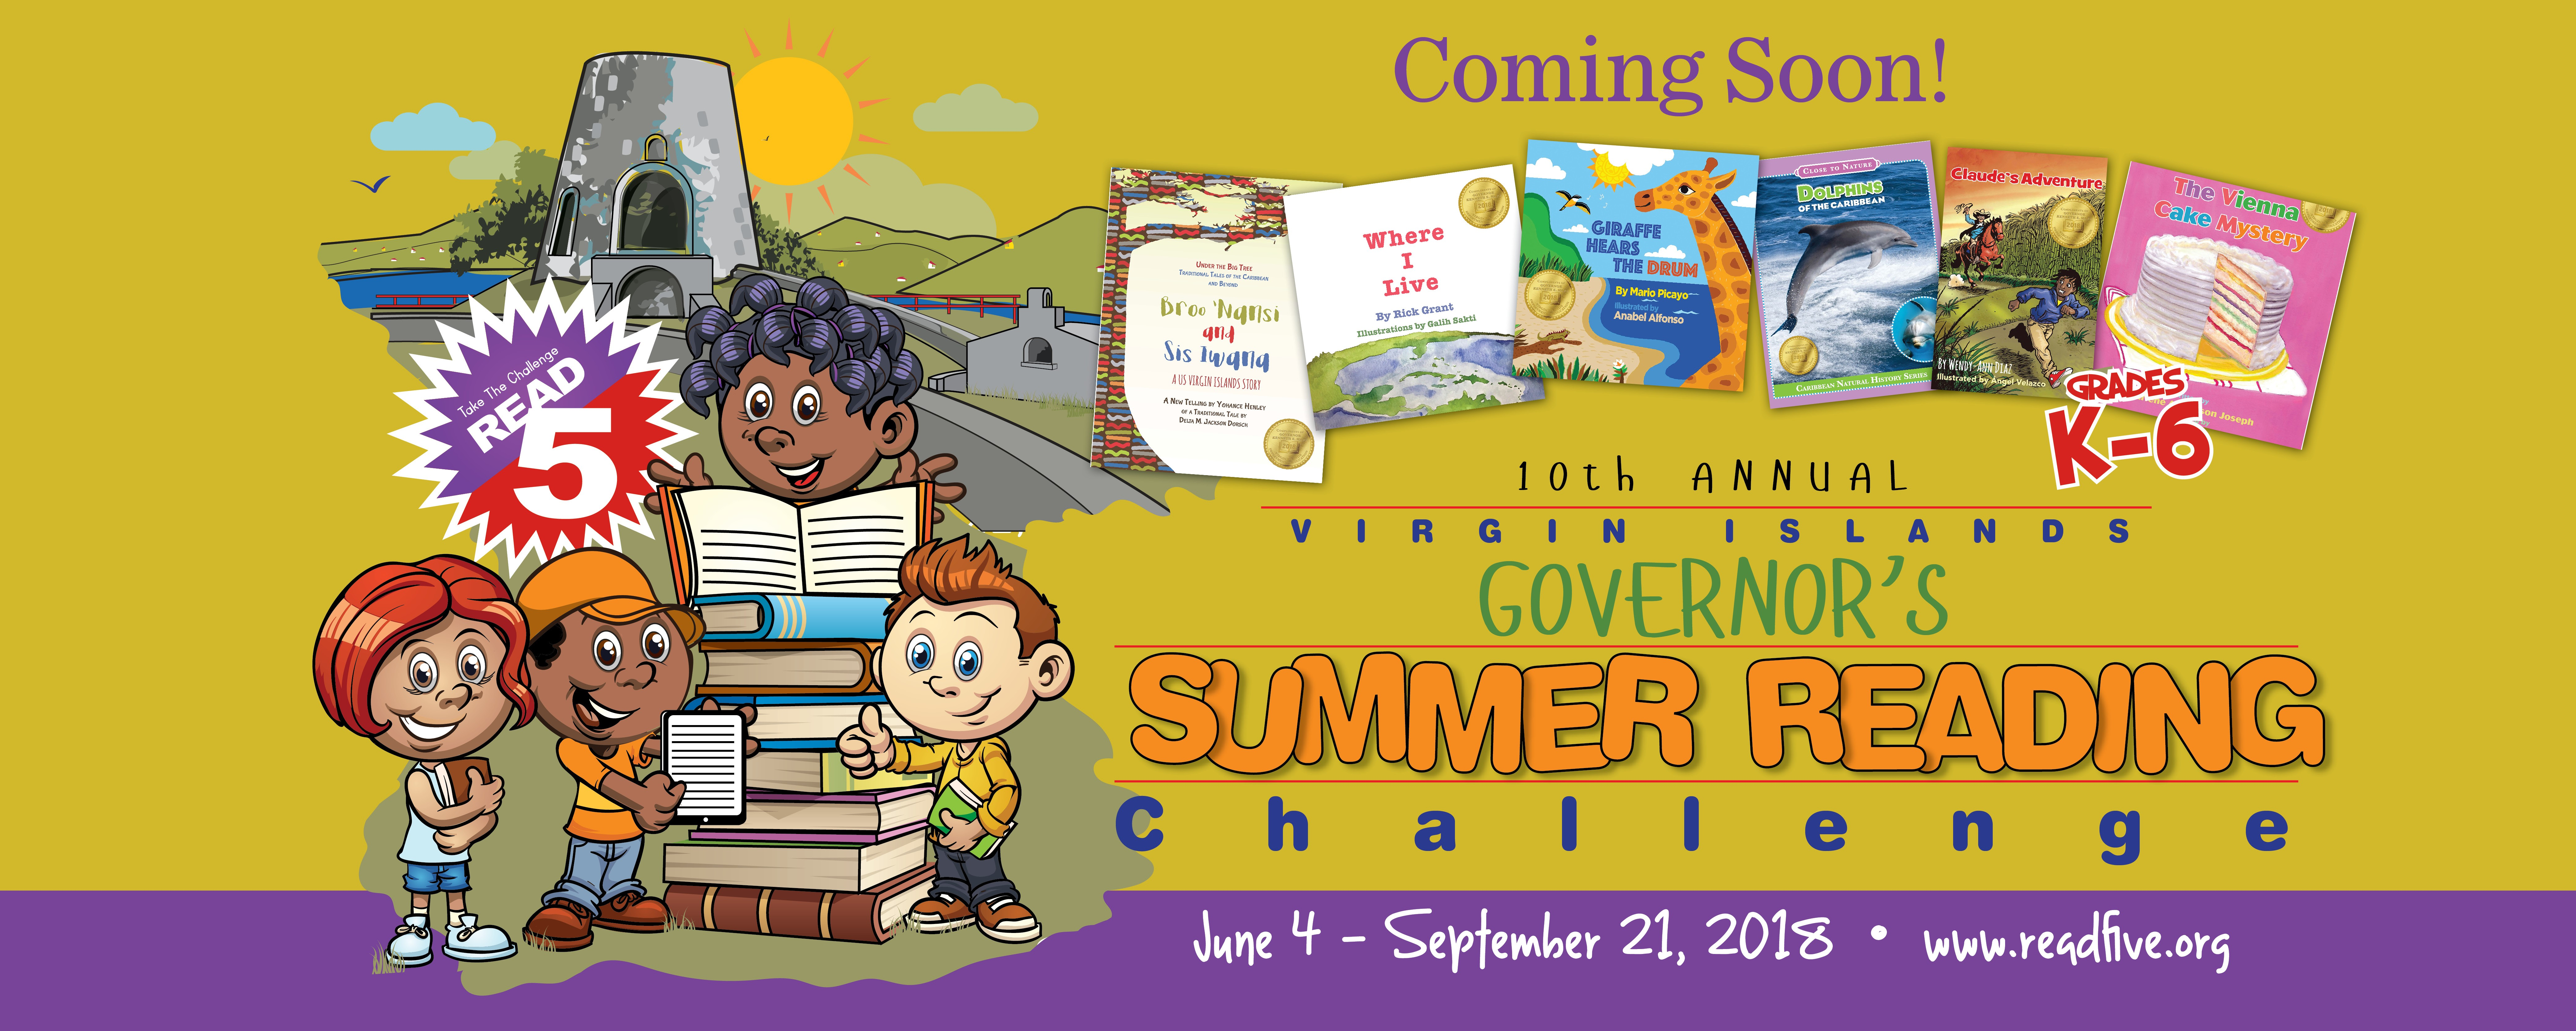 Get Ready for the 10th Annual Virgin Islands Governor's Summer Reading Challenge!